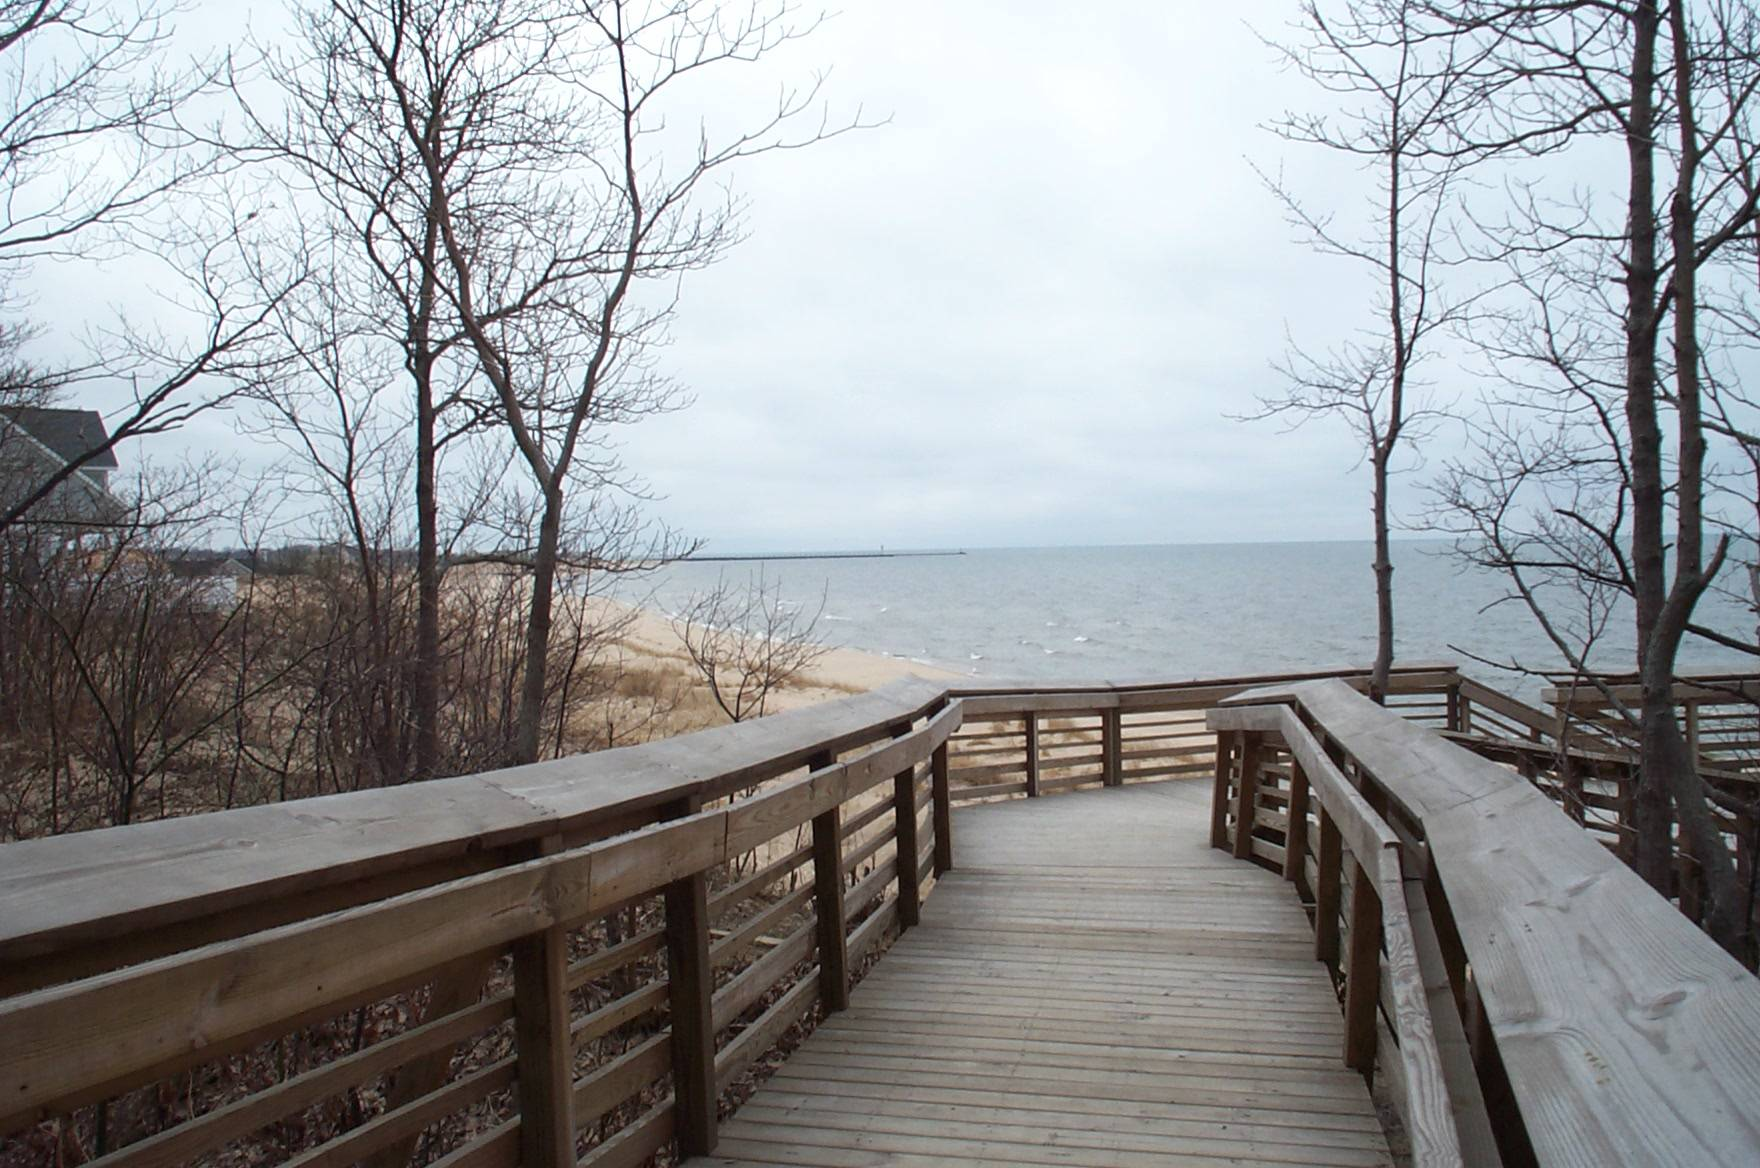 Photo taken from the wooden walkway to North Beach Access that overlooks the beach with a view of  Lake Michigan all the way to the Fifth Avenue Lighthouse